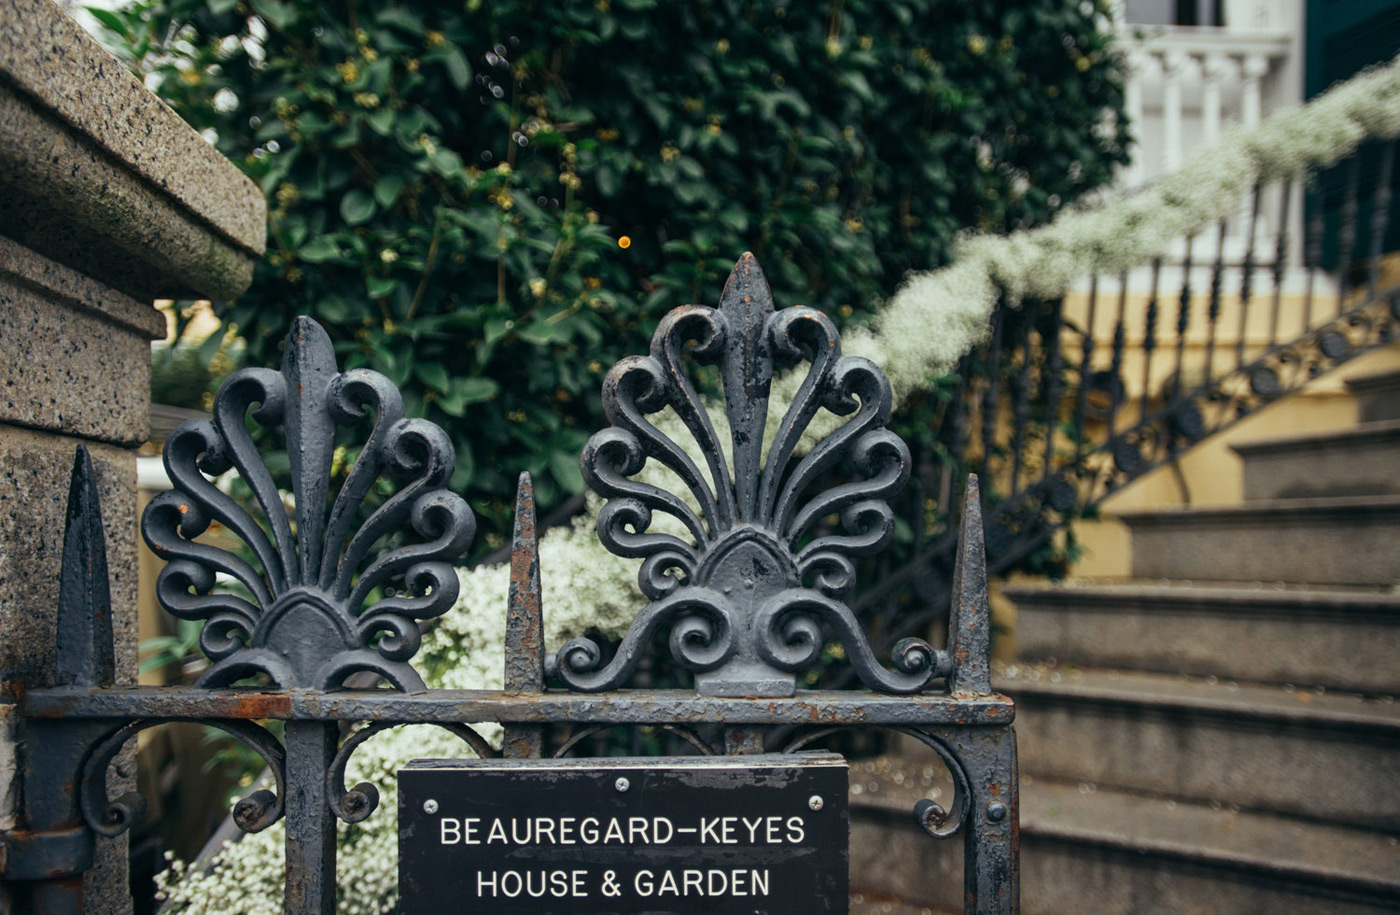 Beauregard Keyes House and Garden plate when you enter the rod iron gate to go up the steps